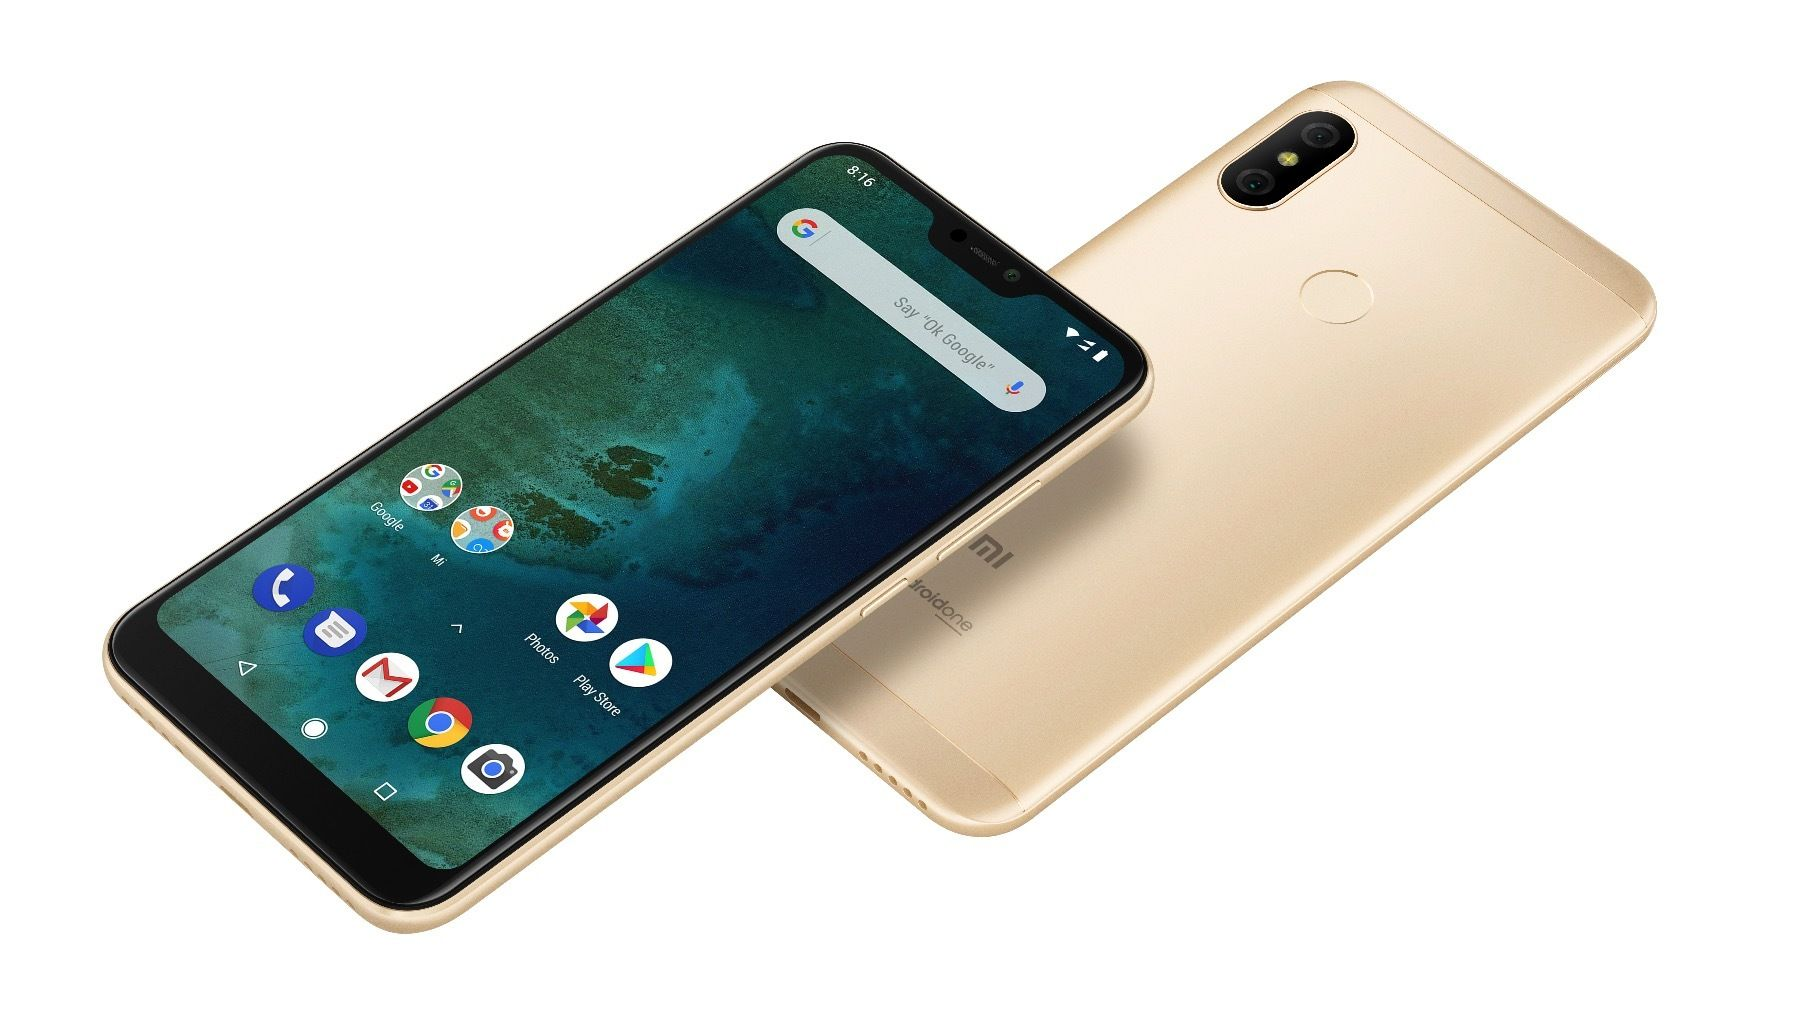 This Post Help You To Install Twrp On Xiaomi Mi A2 Lite And Root Xiaomi Mi A2 Lite Device Here We Got Official Twrp Rec Smartphone Xiaomi Smartphones For Sale